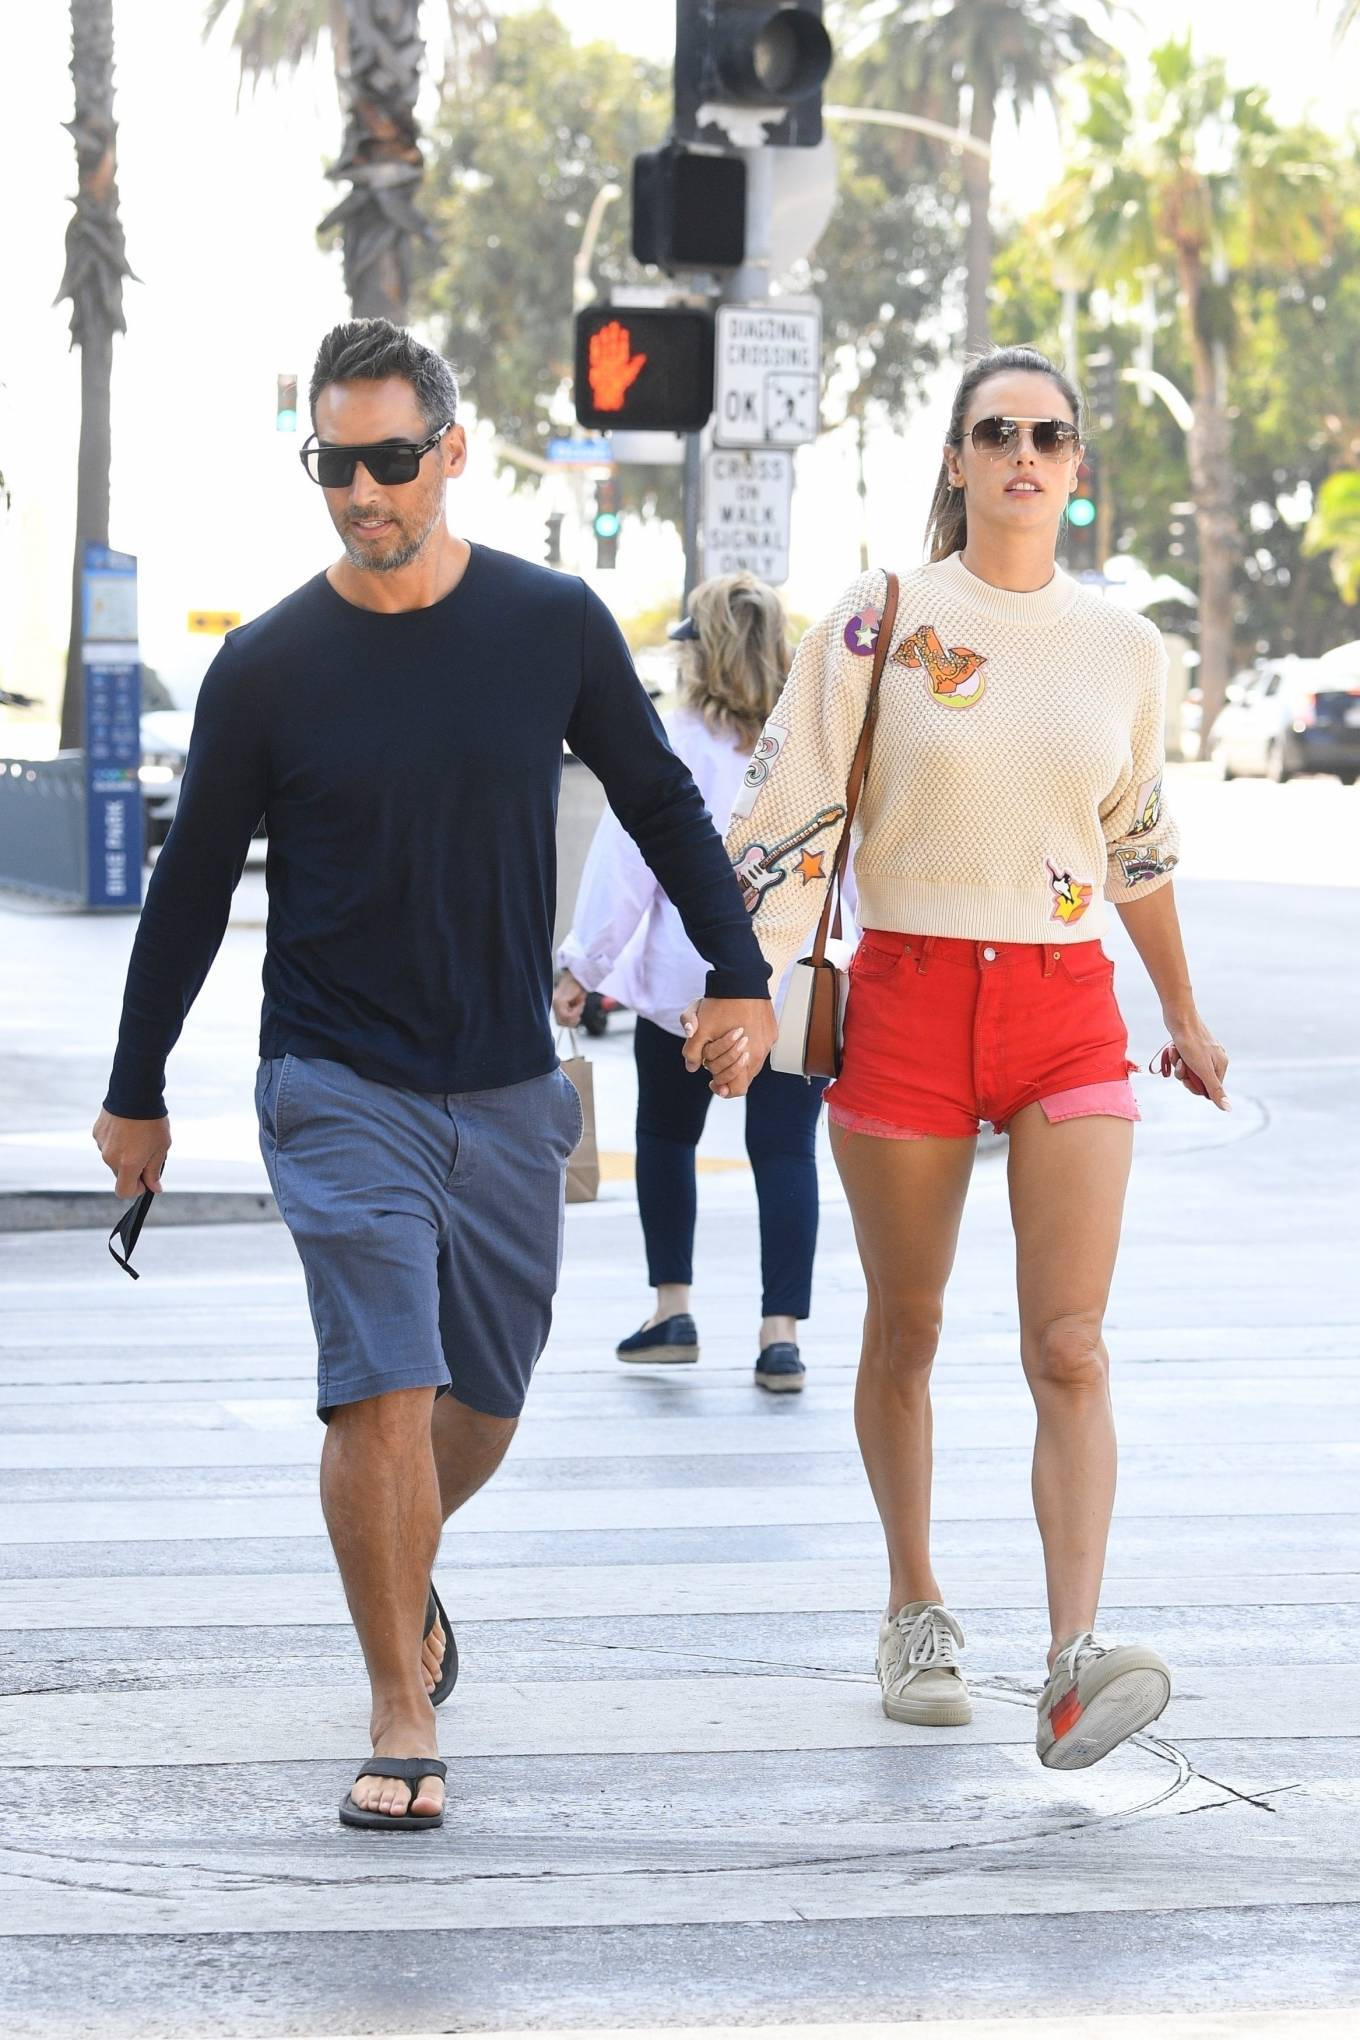 Alessandra Ambrosio donning round beige lace-up sneakers by goat